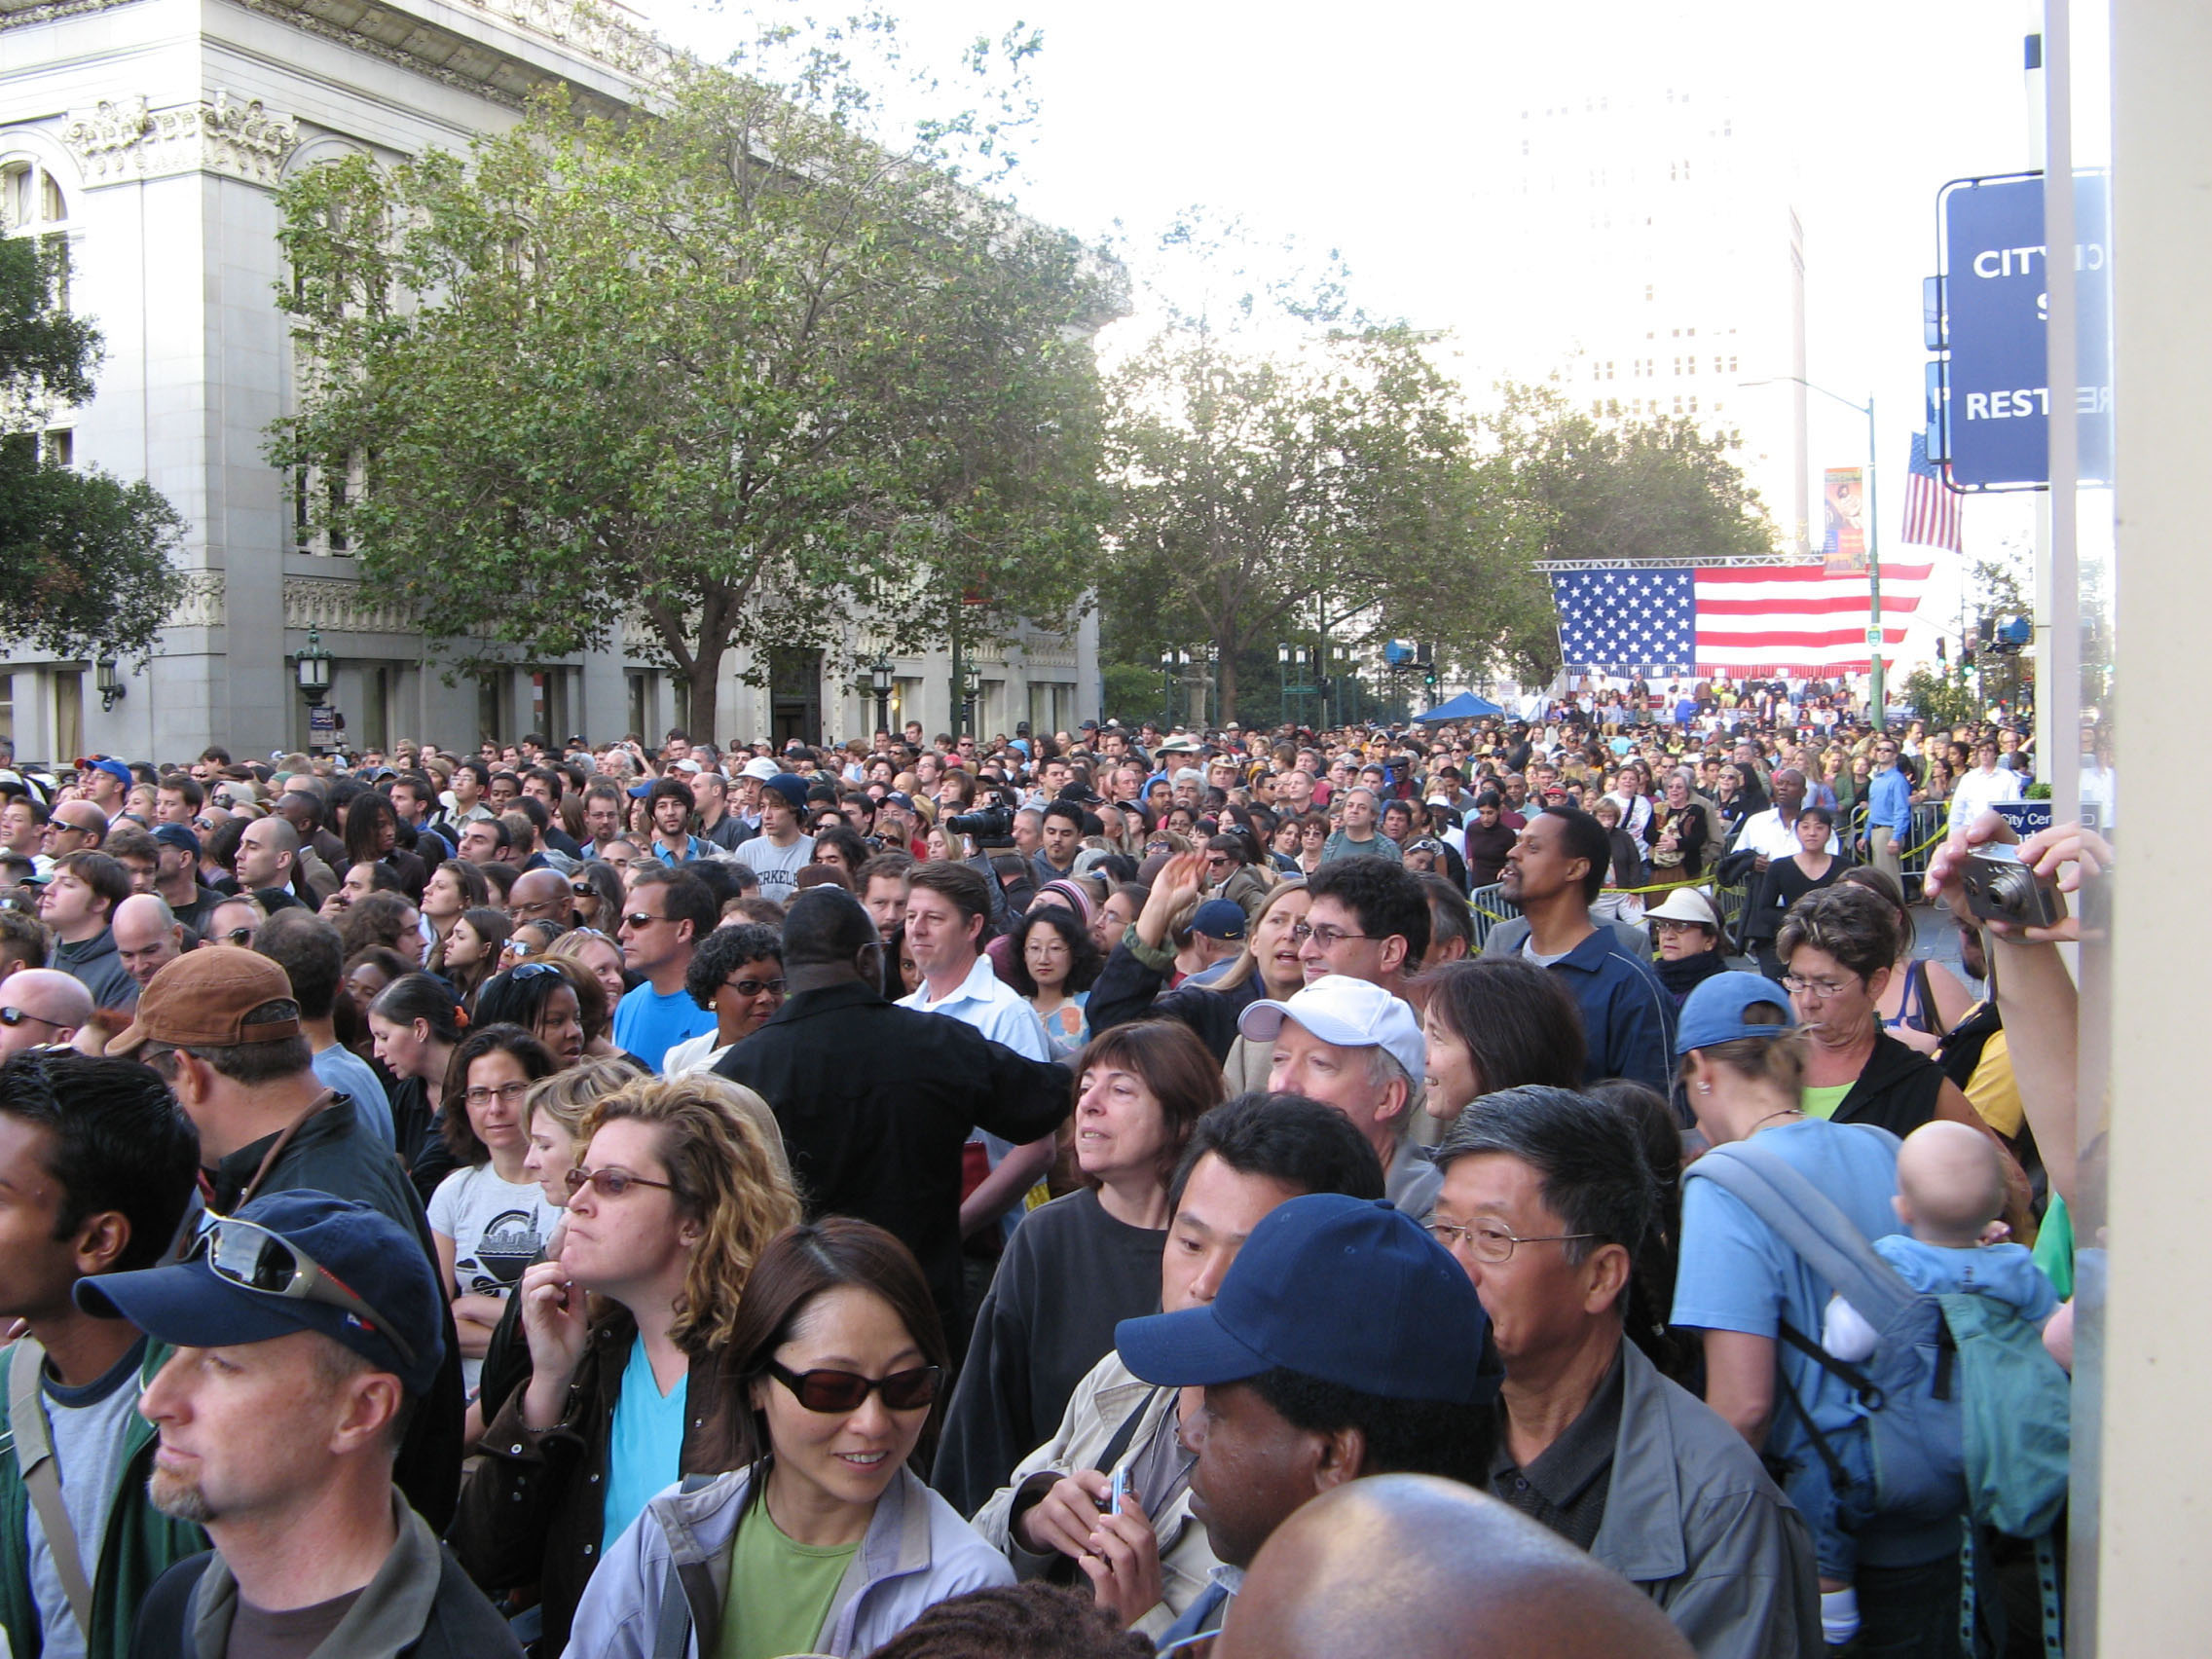 Oakland_Clinton_Sep30-07_1.jpg